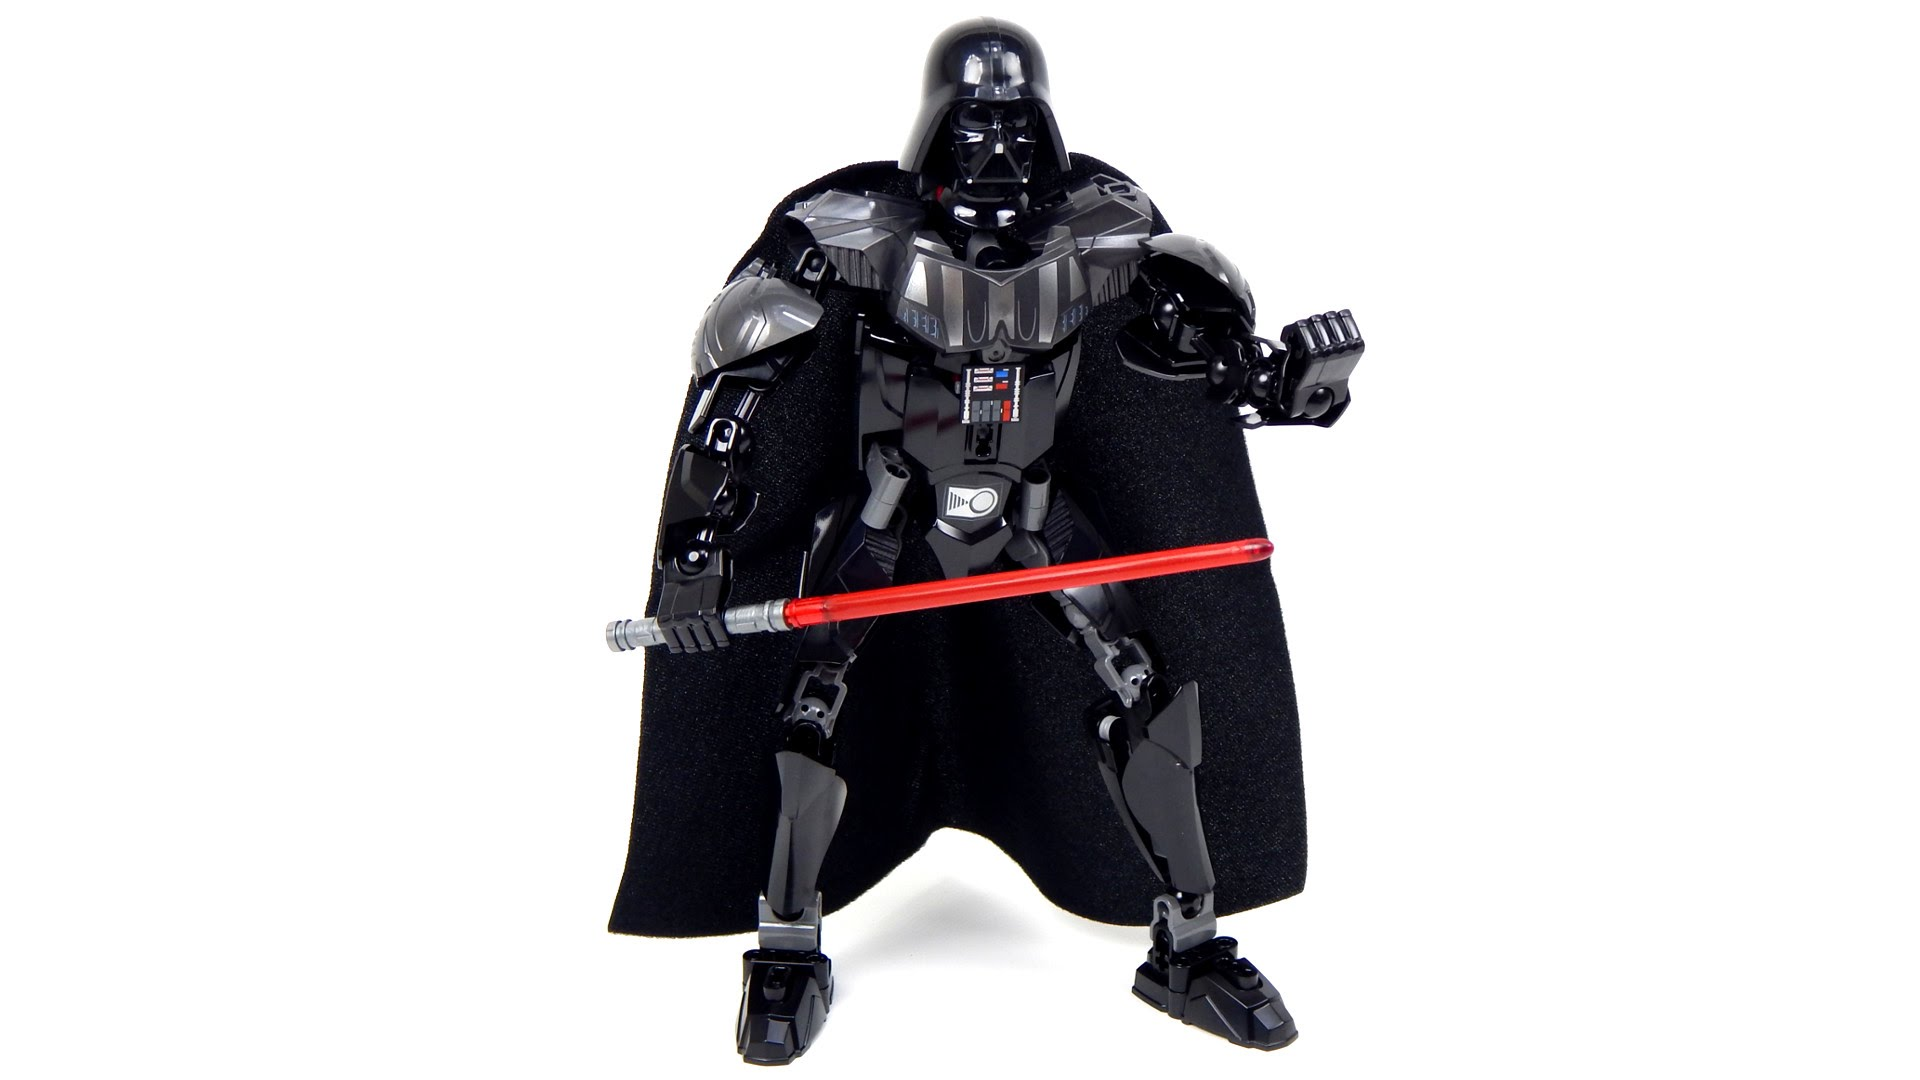 3D Printable Star Wars  Darth Vader  30 cm tall by